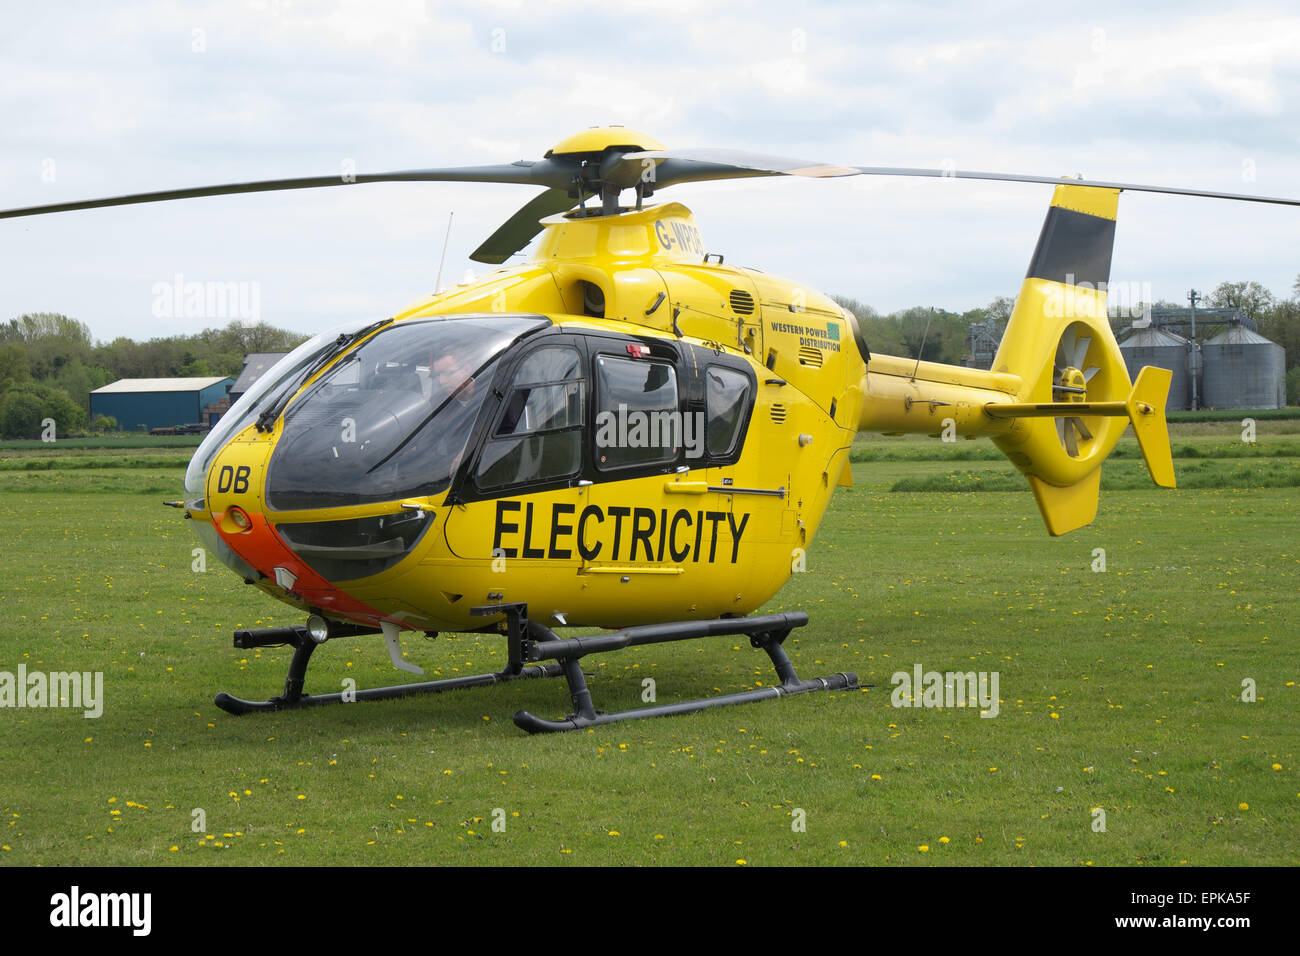 WPD Western Power Distribution EC135 helicopter used to